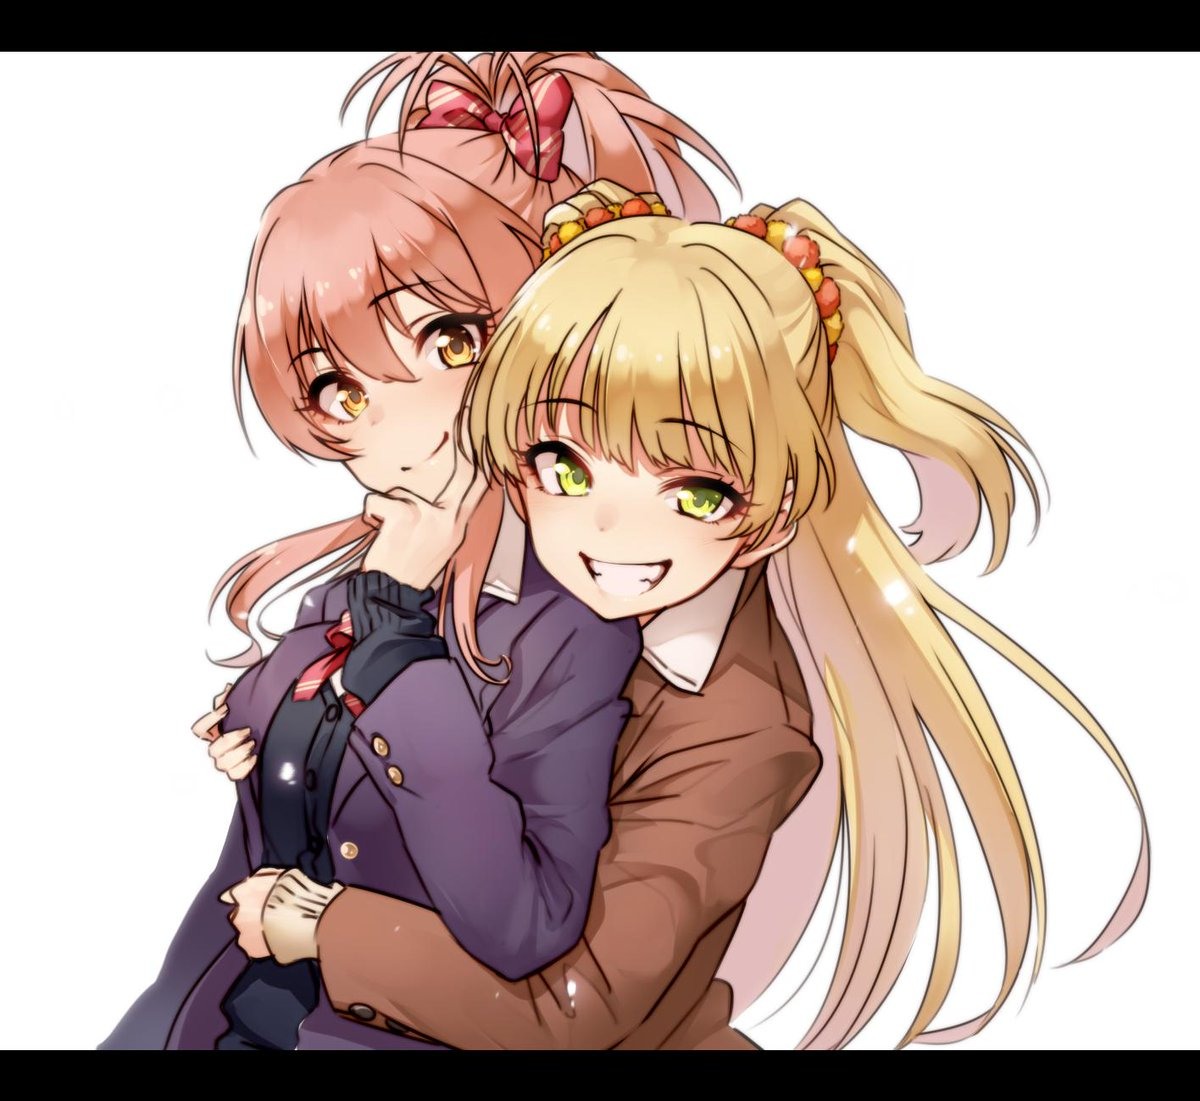 2girls bangs blazer blonde_hair breasts eyebrows_visible_through_hair green_eyes grin hug idolmaster idolmaster_cinderella_girls jacket jougasaki_mika jougasaki_rika kakaobataa long_hair looking_at_viewer multiple_girls pink_hair ponytail school_uniform siblings simple_background sisters sleeves_past_wrists smile two_side_up white_background yellow_eyes